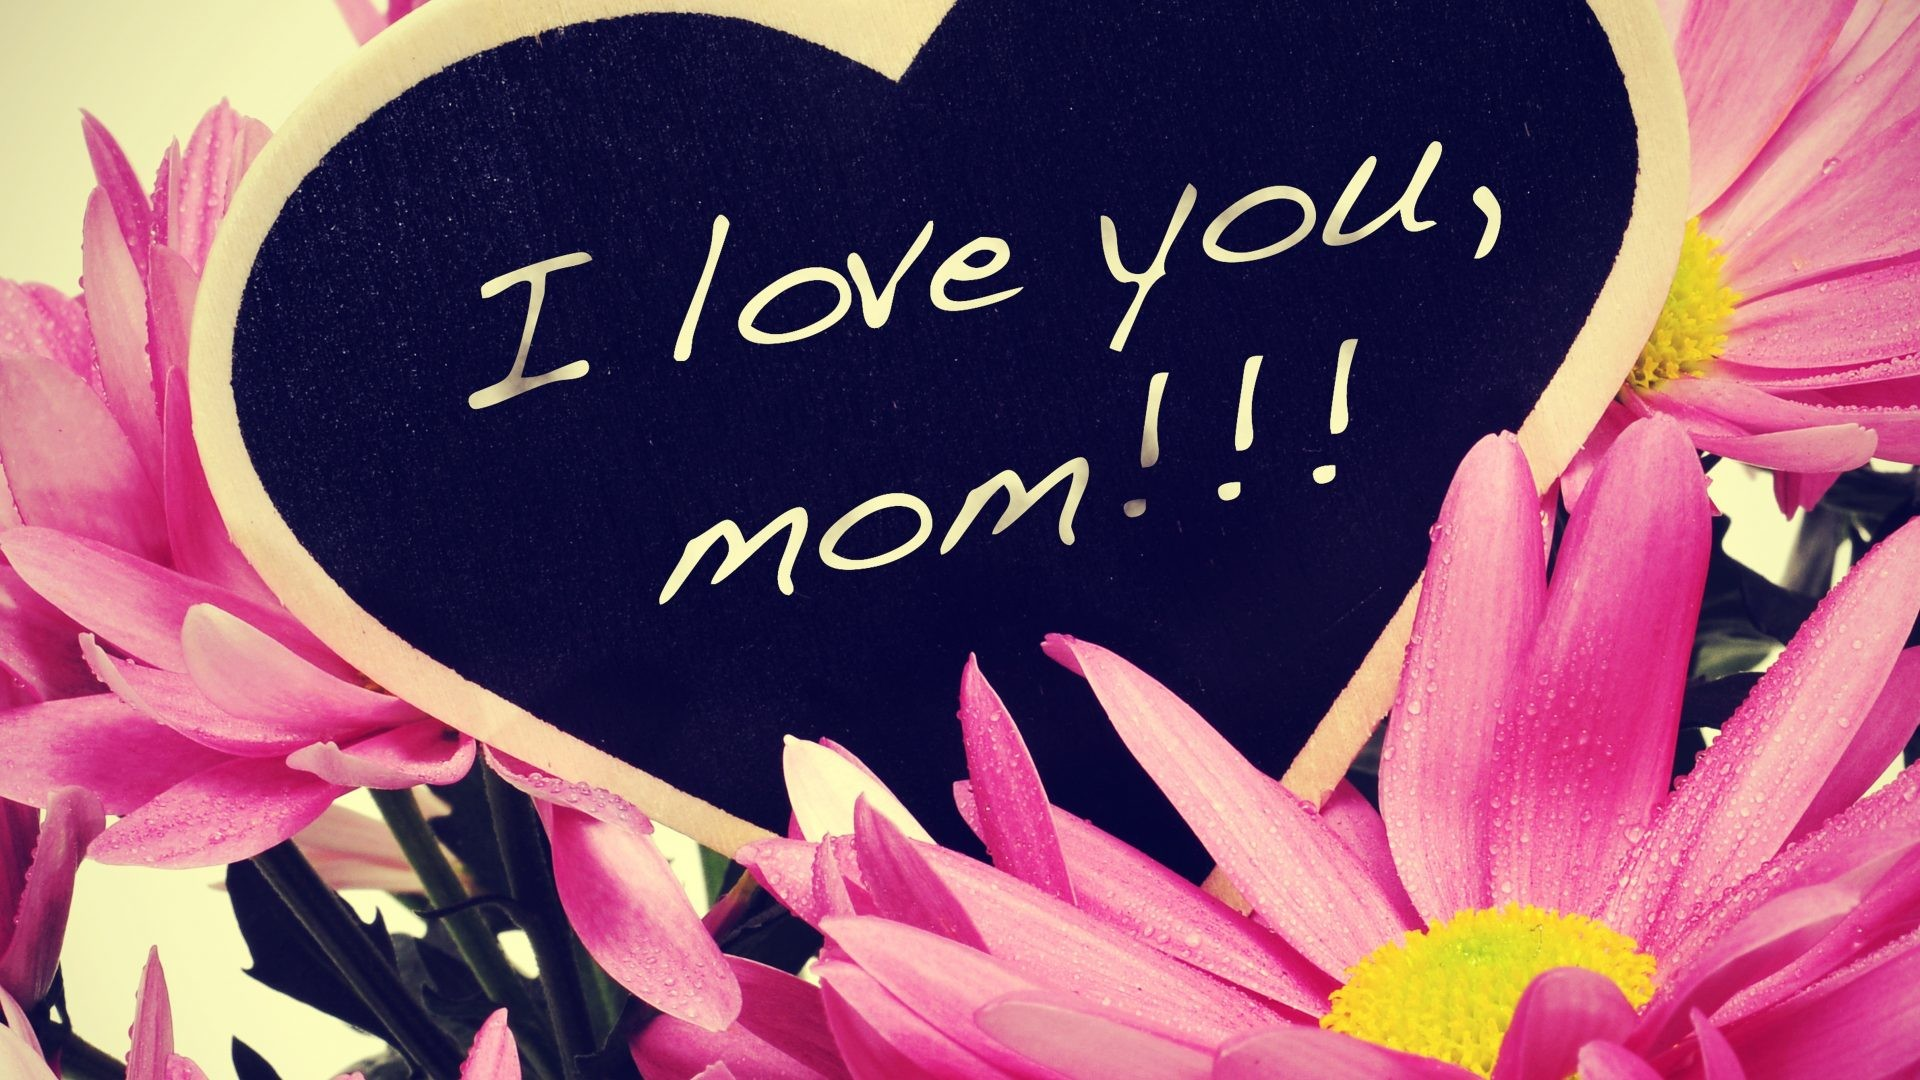 1920x1080 Mom Tag - Daisy Daisies Flowers Mom Nature Love Flower Wallpaper For Iphone  5c for HD